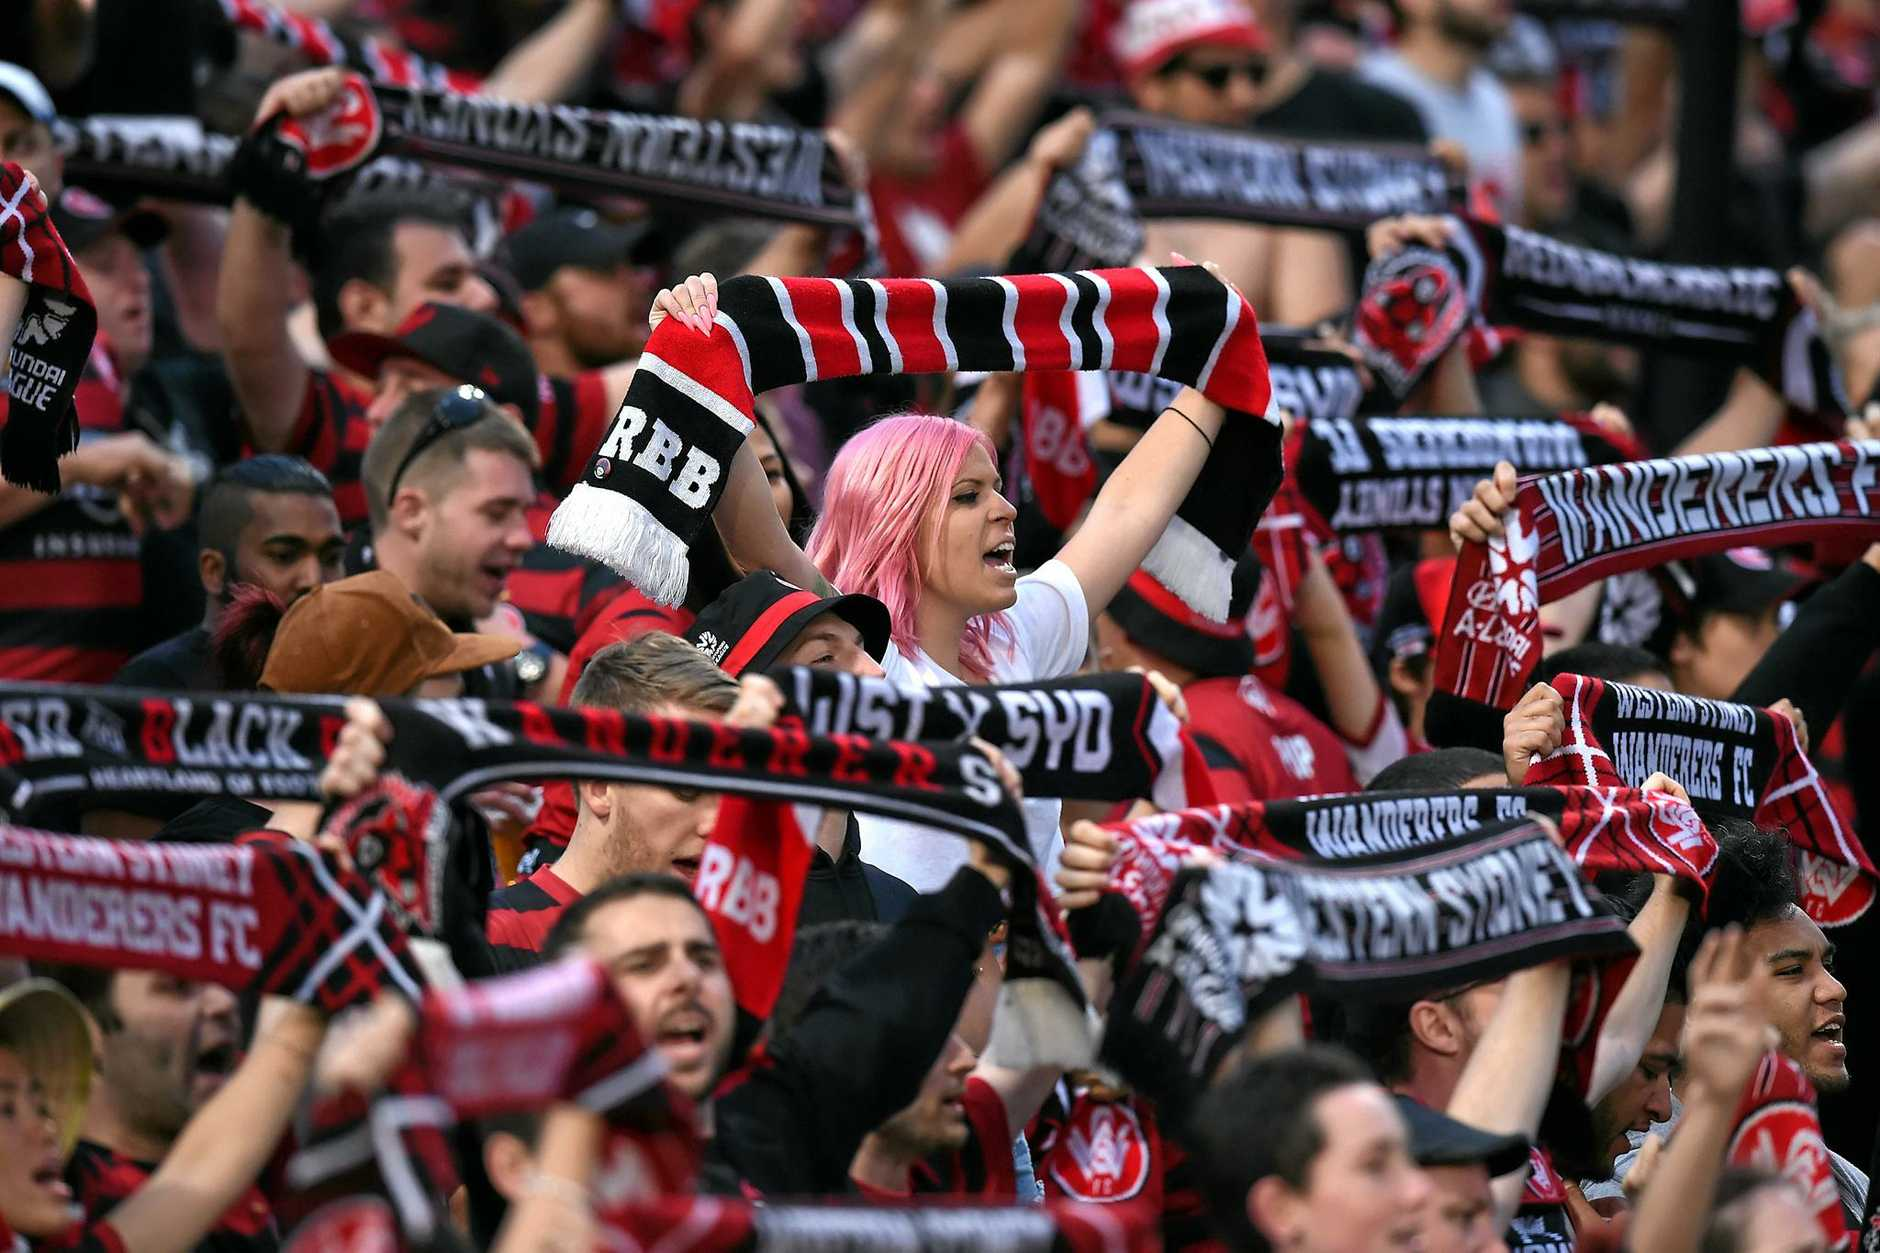 Wanderers supporters from the Red and Black Bloc in 2015.